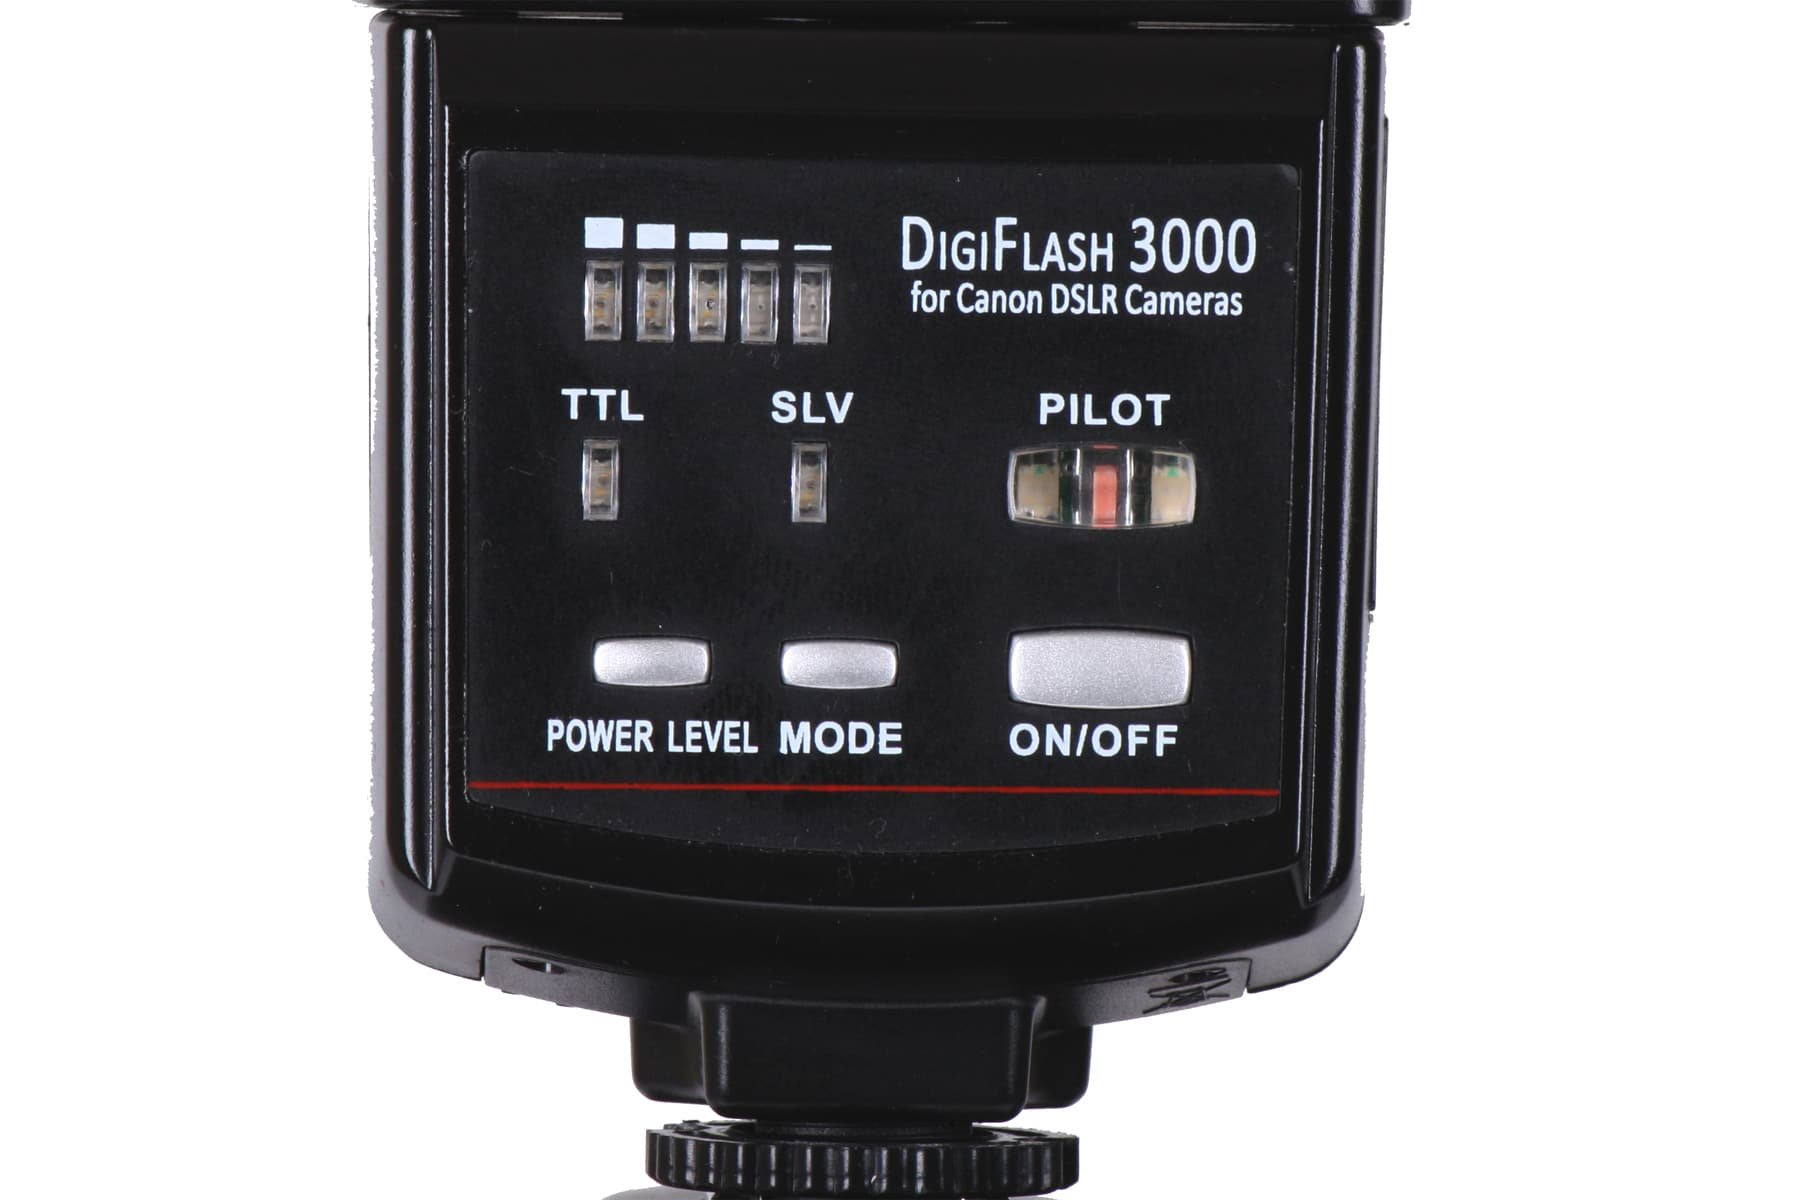 Digiflash 3000 Tocad America